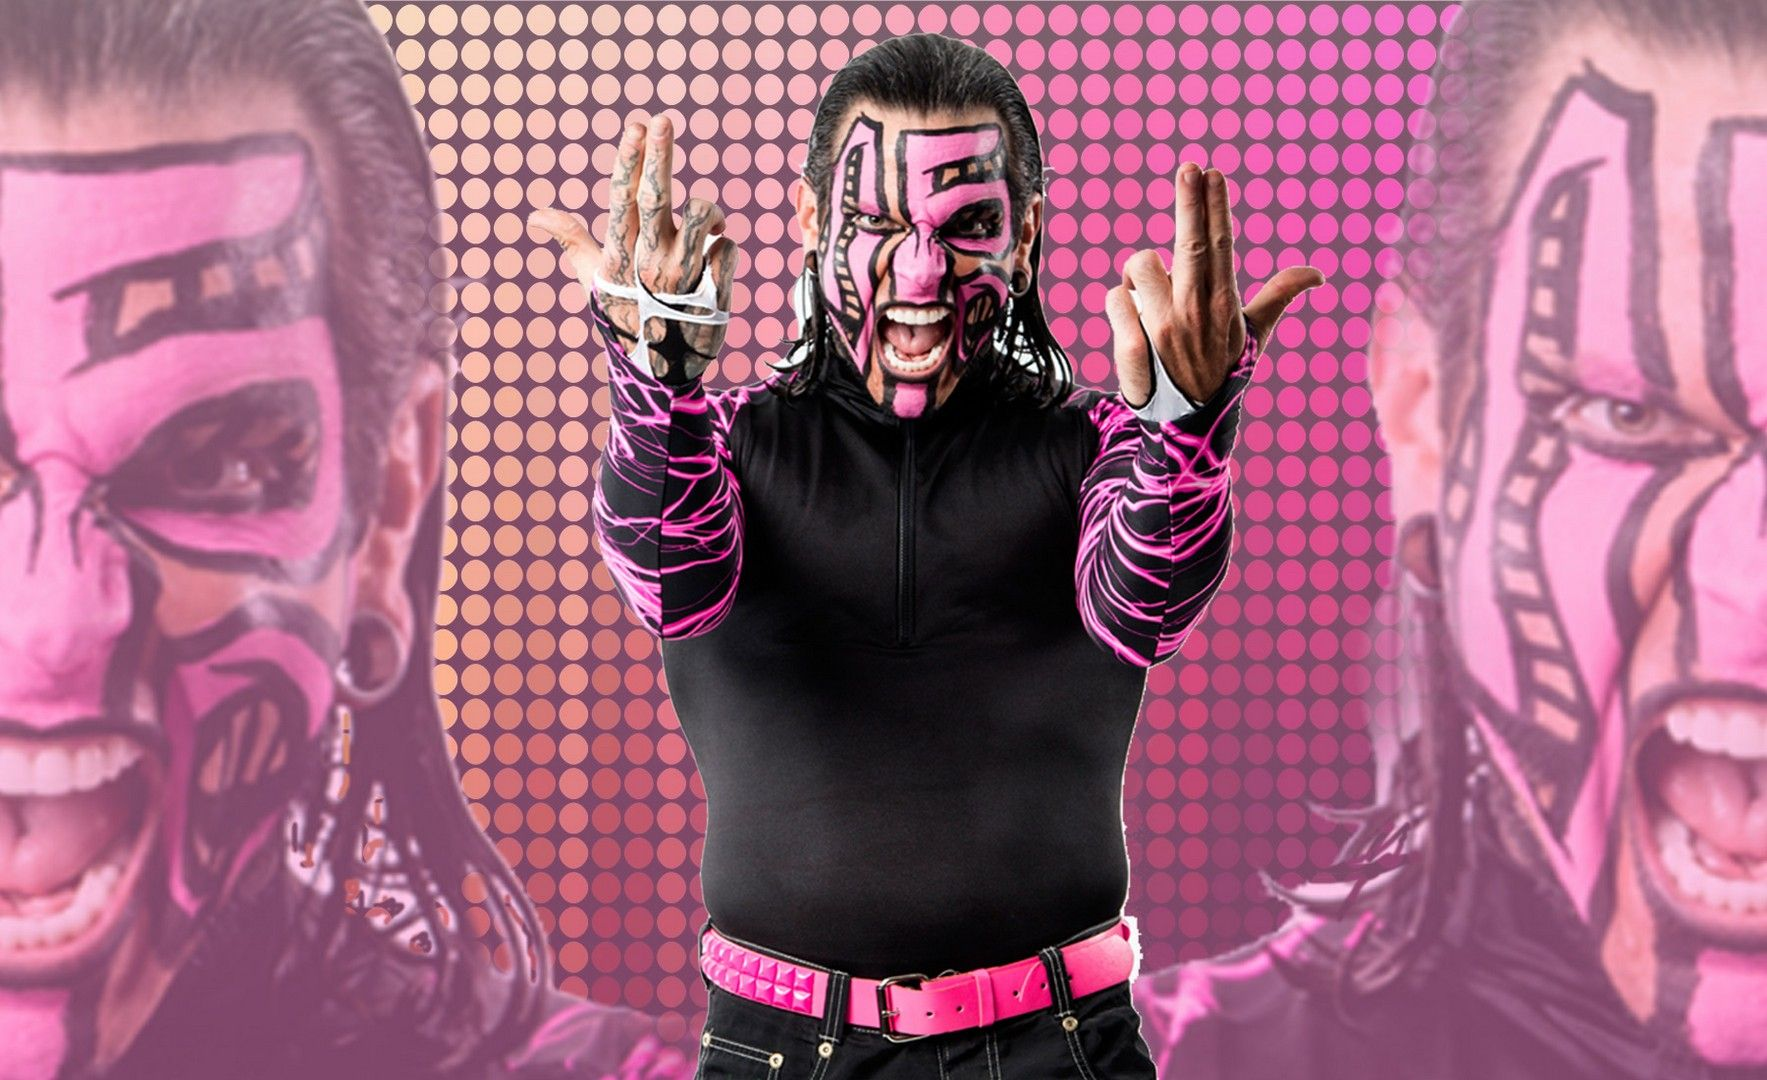 jeff hardy wallpaper | wwe wallpaper | pinterest | jeff hardy and